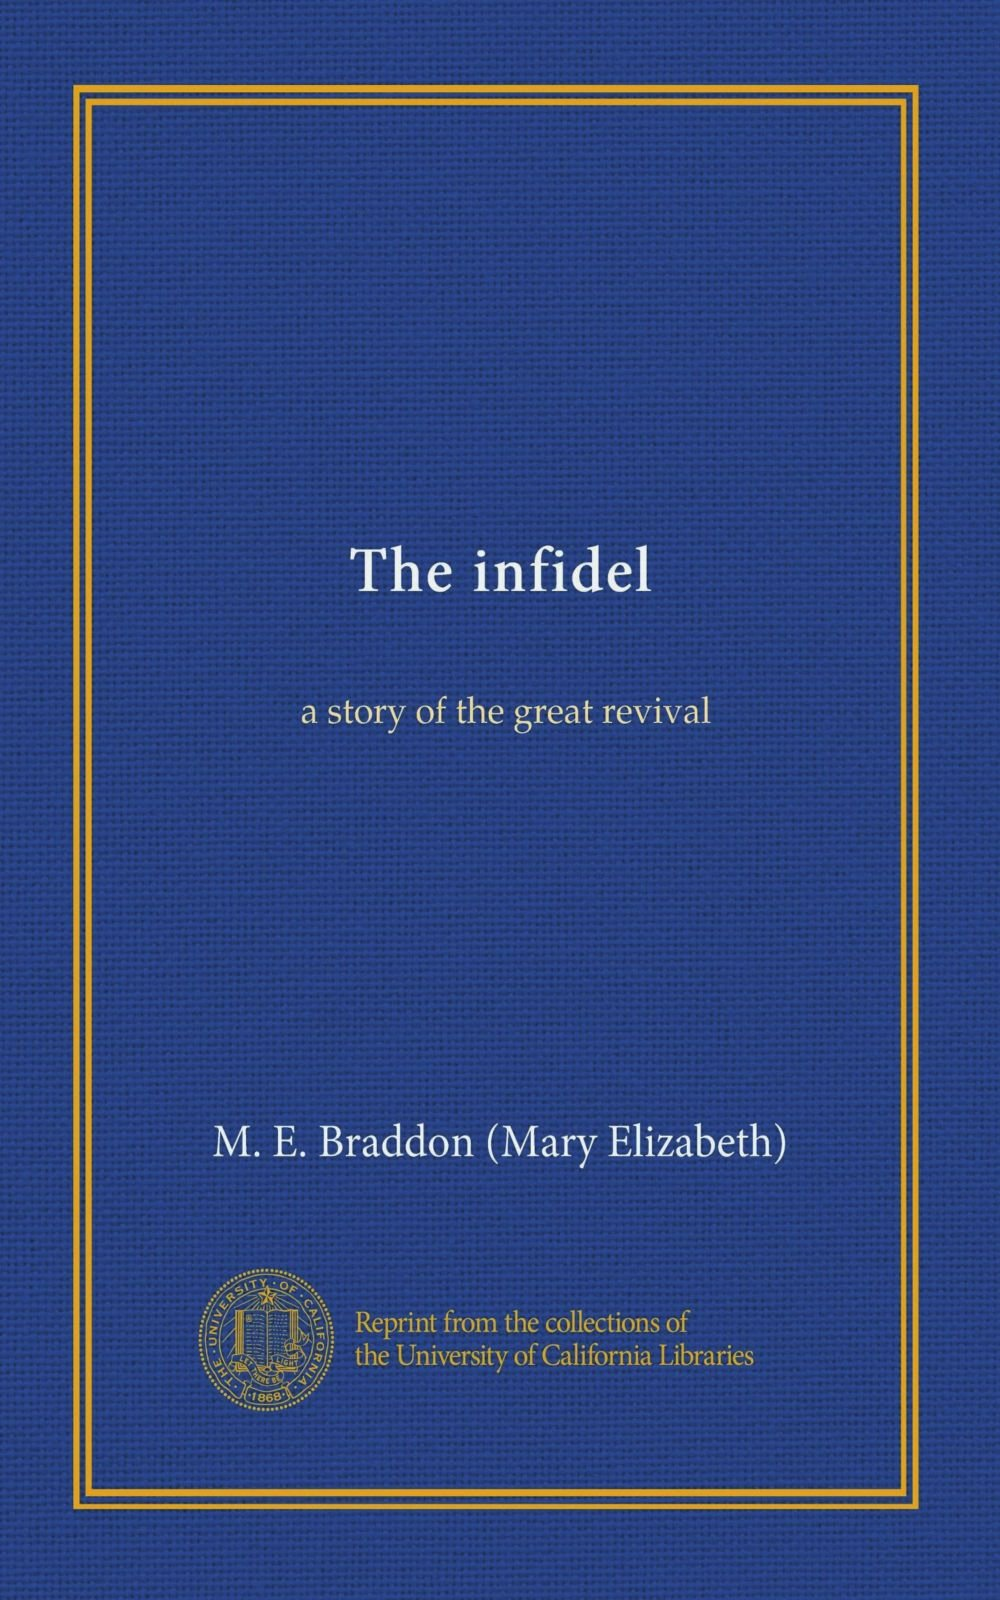 Download The infidel: a story of the great revival ebook